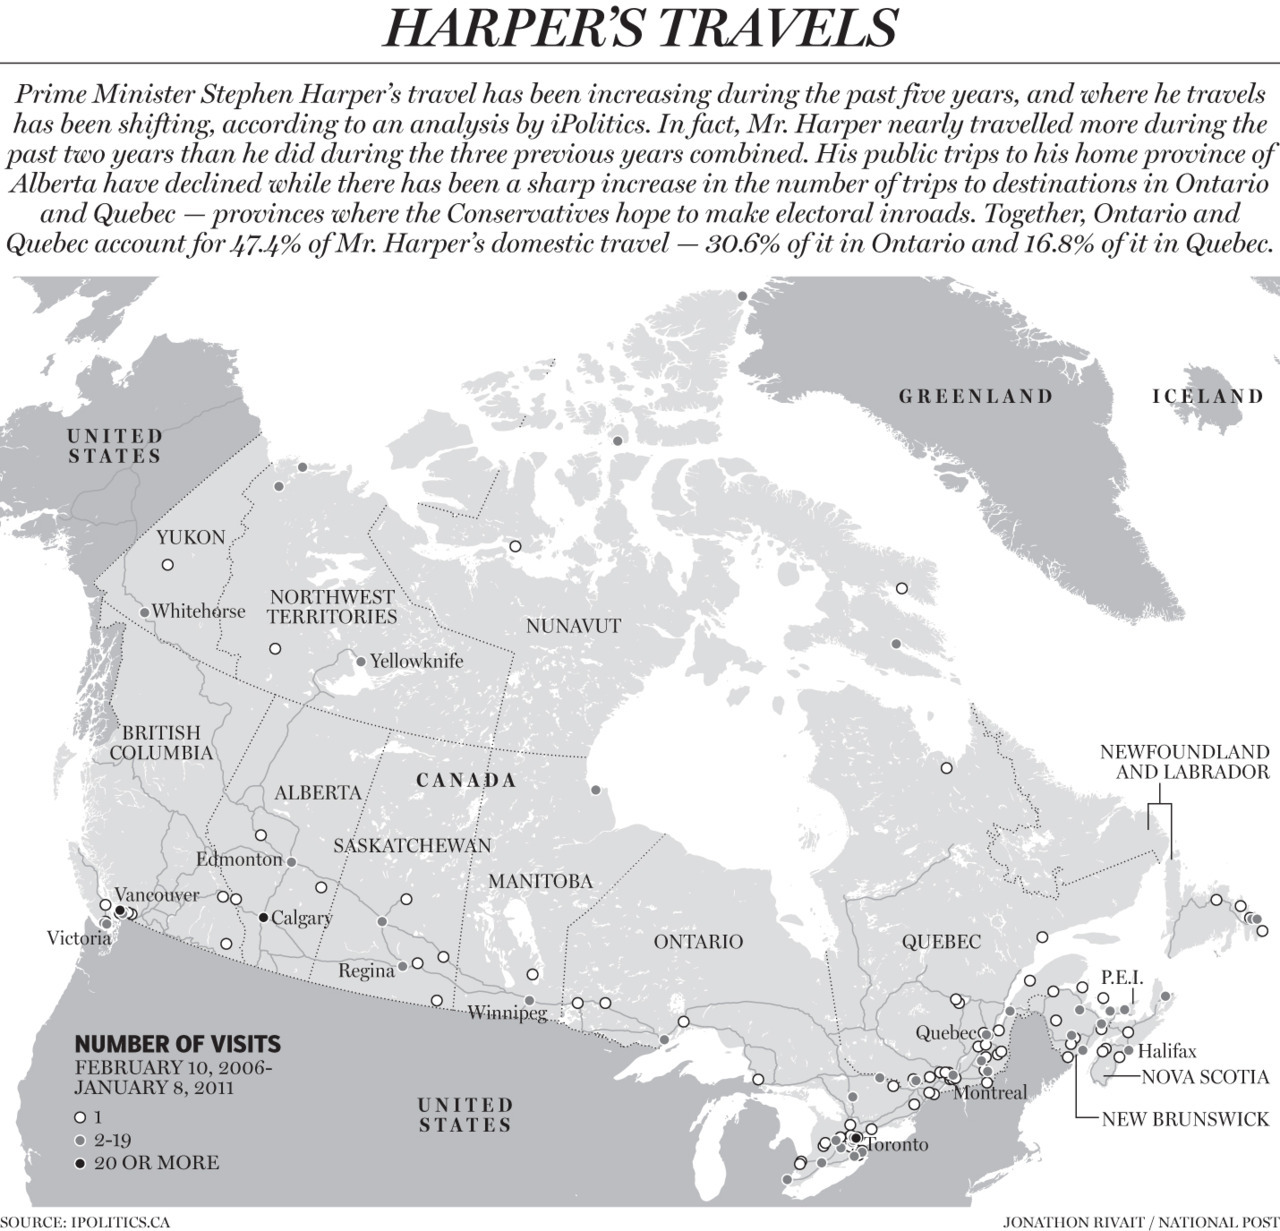 Harper's Odyssey: A look at Prime Minister Stephen Harper's travel over the past five yearsRelated: Harper's first five years of governanceCheck out our full visual archive.